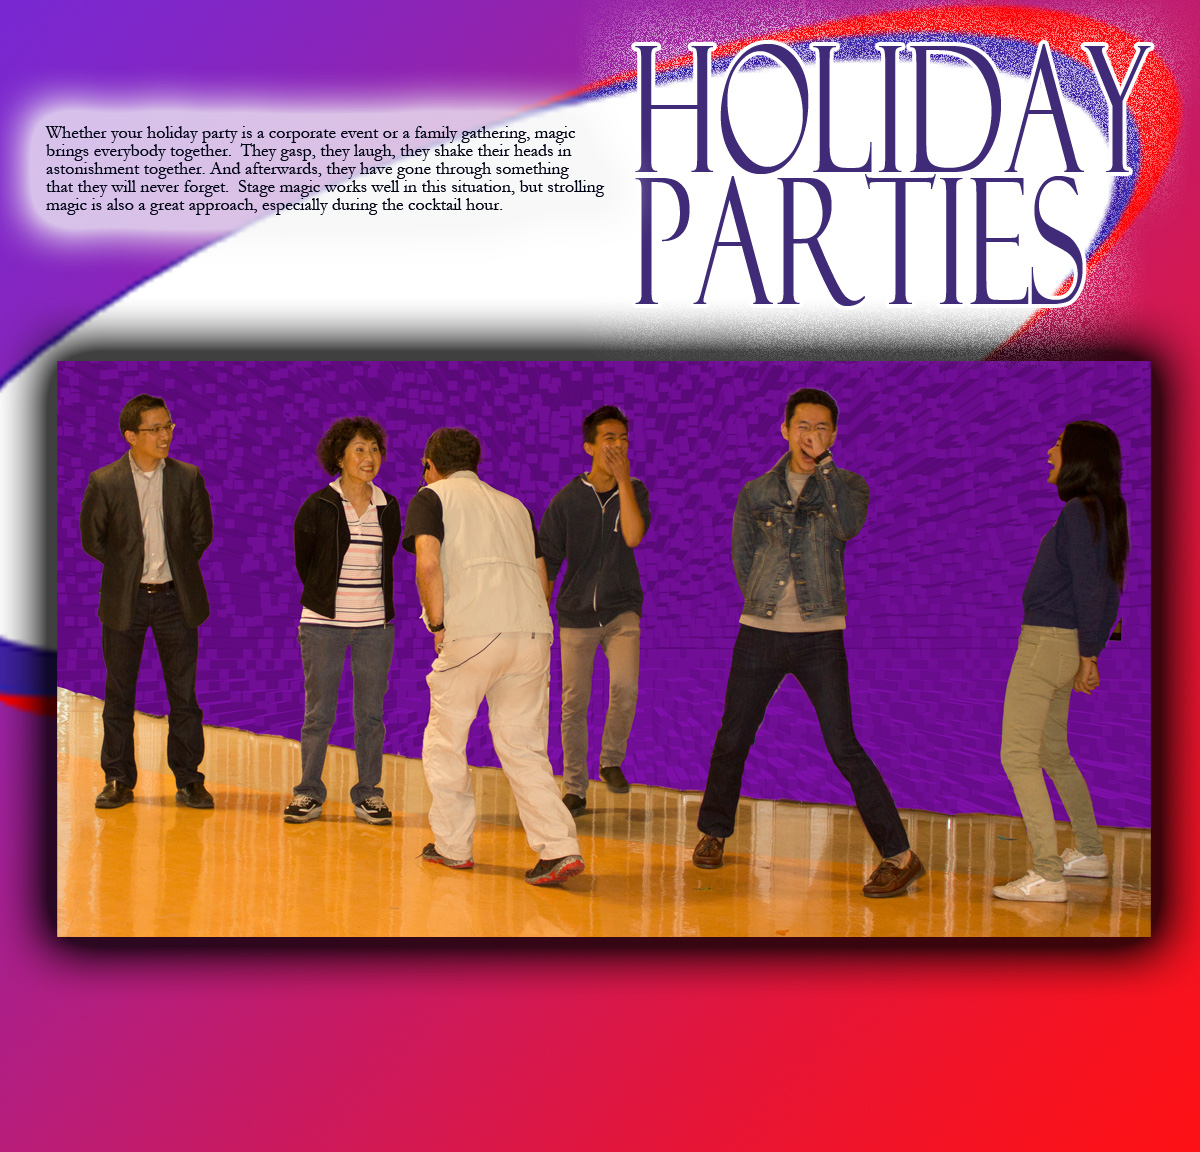 Whether your holiday party is a corporate event or a family gathering, magic brings everybody together. They gasp, they laugh, they shake their heads in astonishment together. And afterwards, they have gone through something that they will never forget. Stage magic works well in this situation, but strolling magic is also a great approach, especially during the cocktail hour.